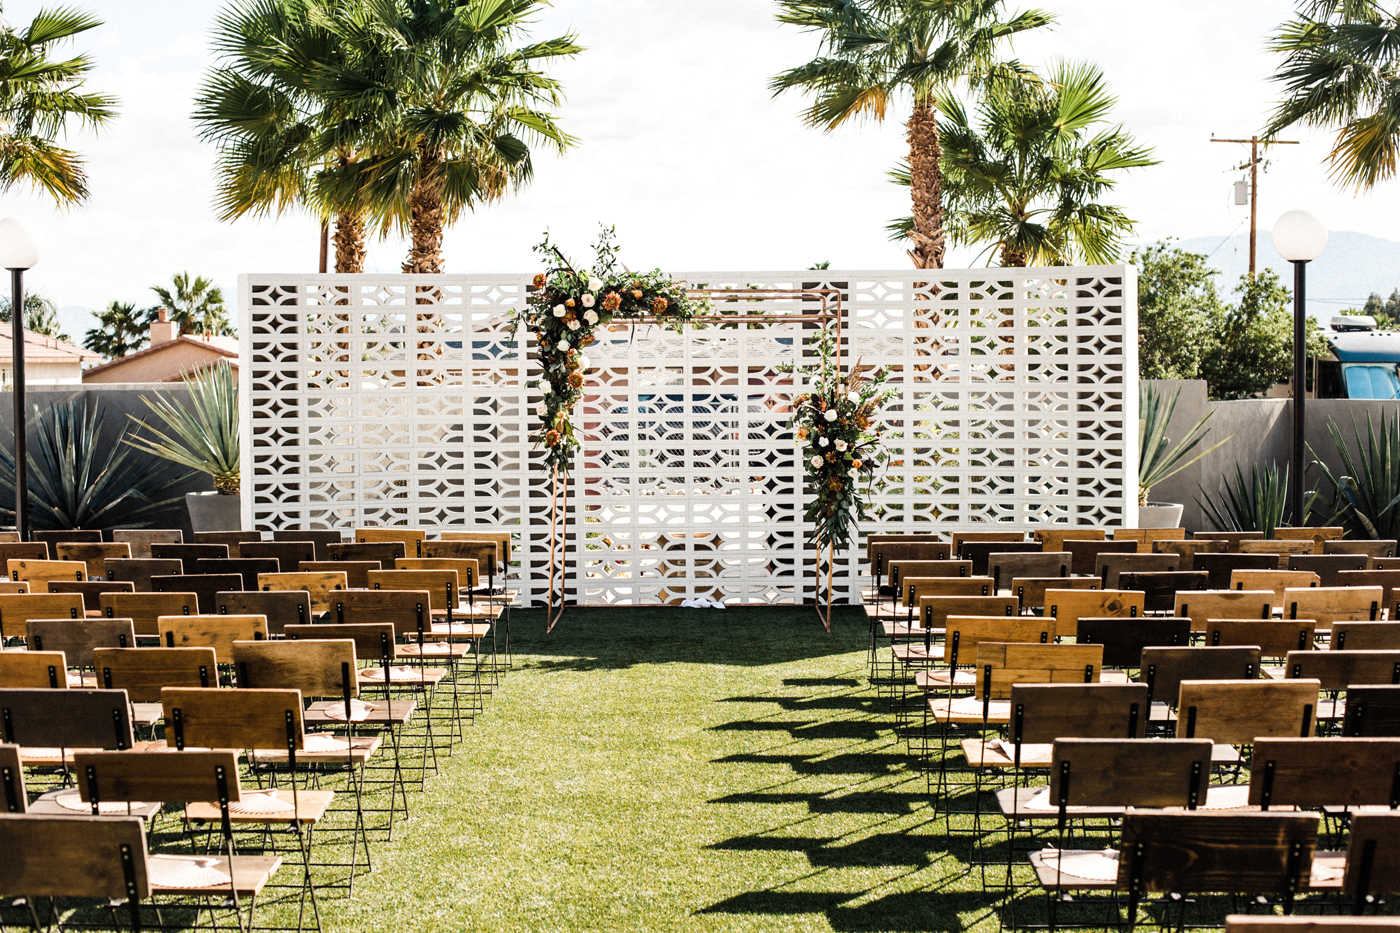 The-Lautner-Compound-Wedding-Palm-Springs-34.jpg